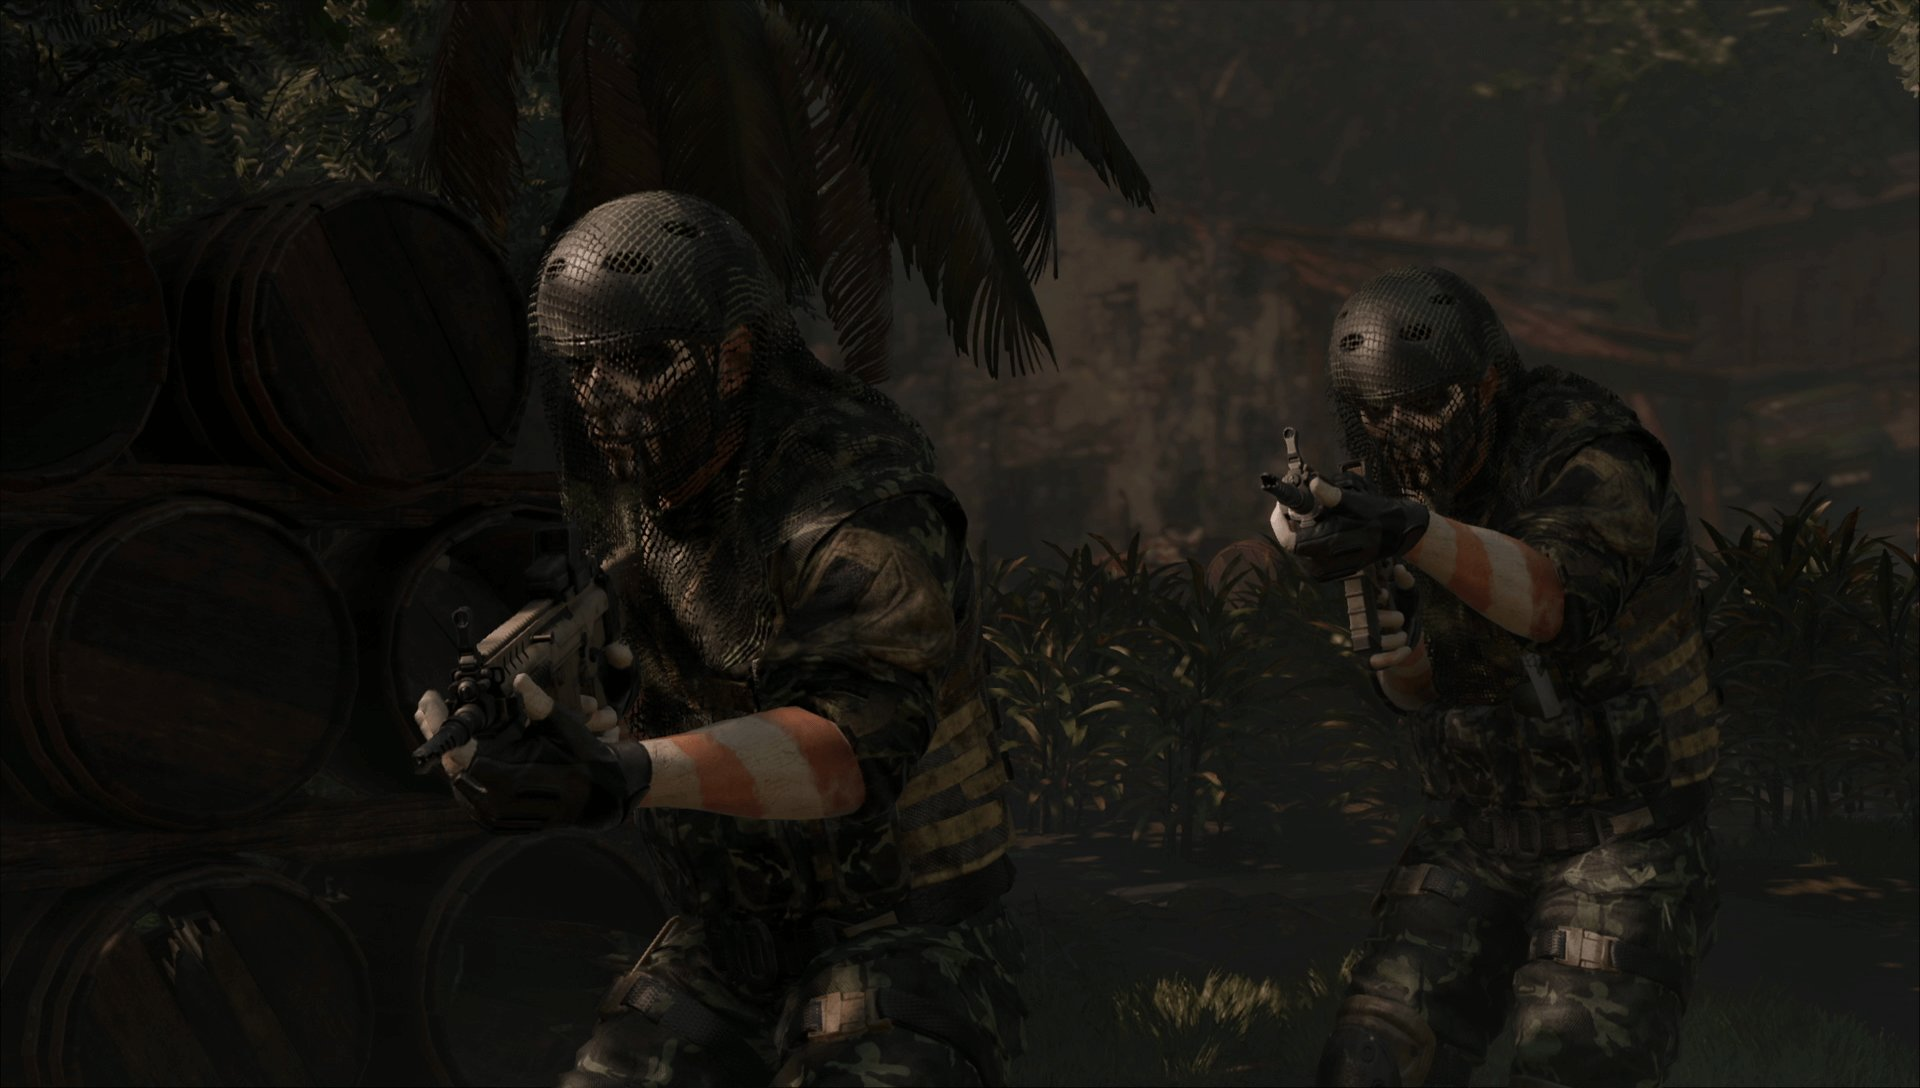 Shadow of the Tomb Raider is filled with deadly foes, from swarms of vicious piranhas to elite Trinity soldiers. https://t.co/jr4GjqJ2fq